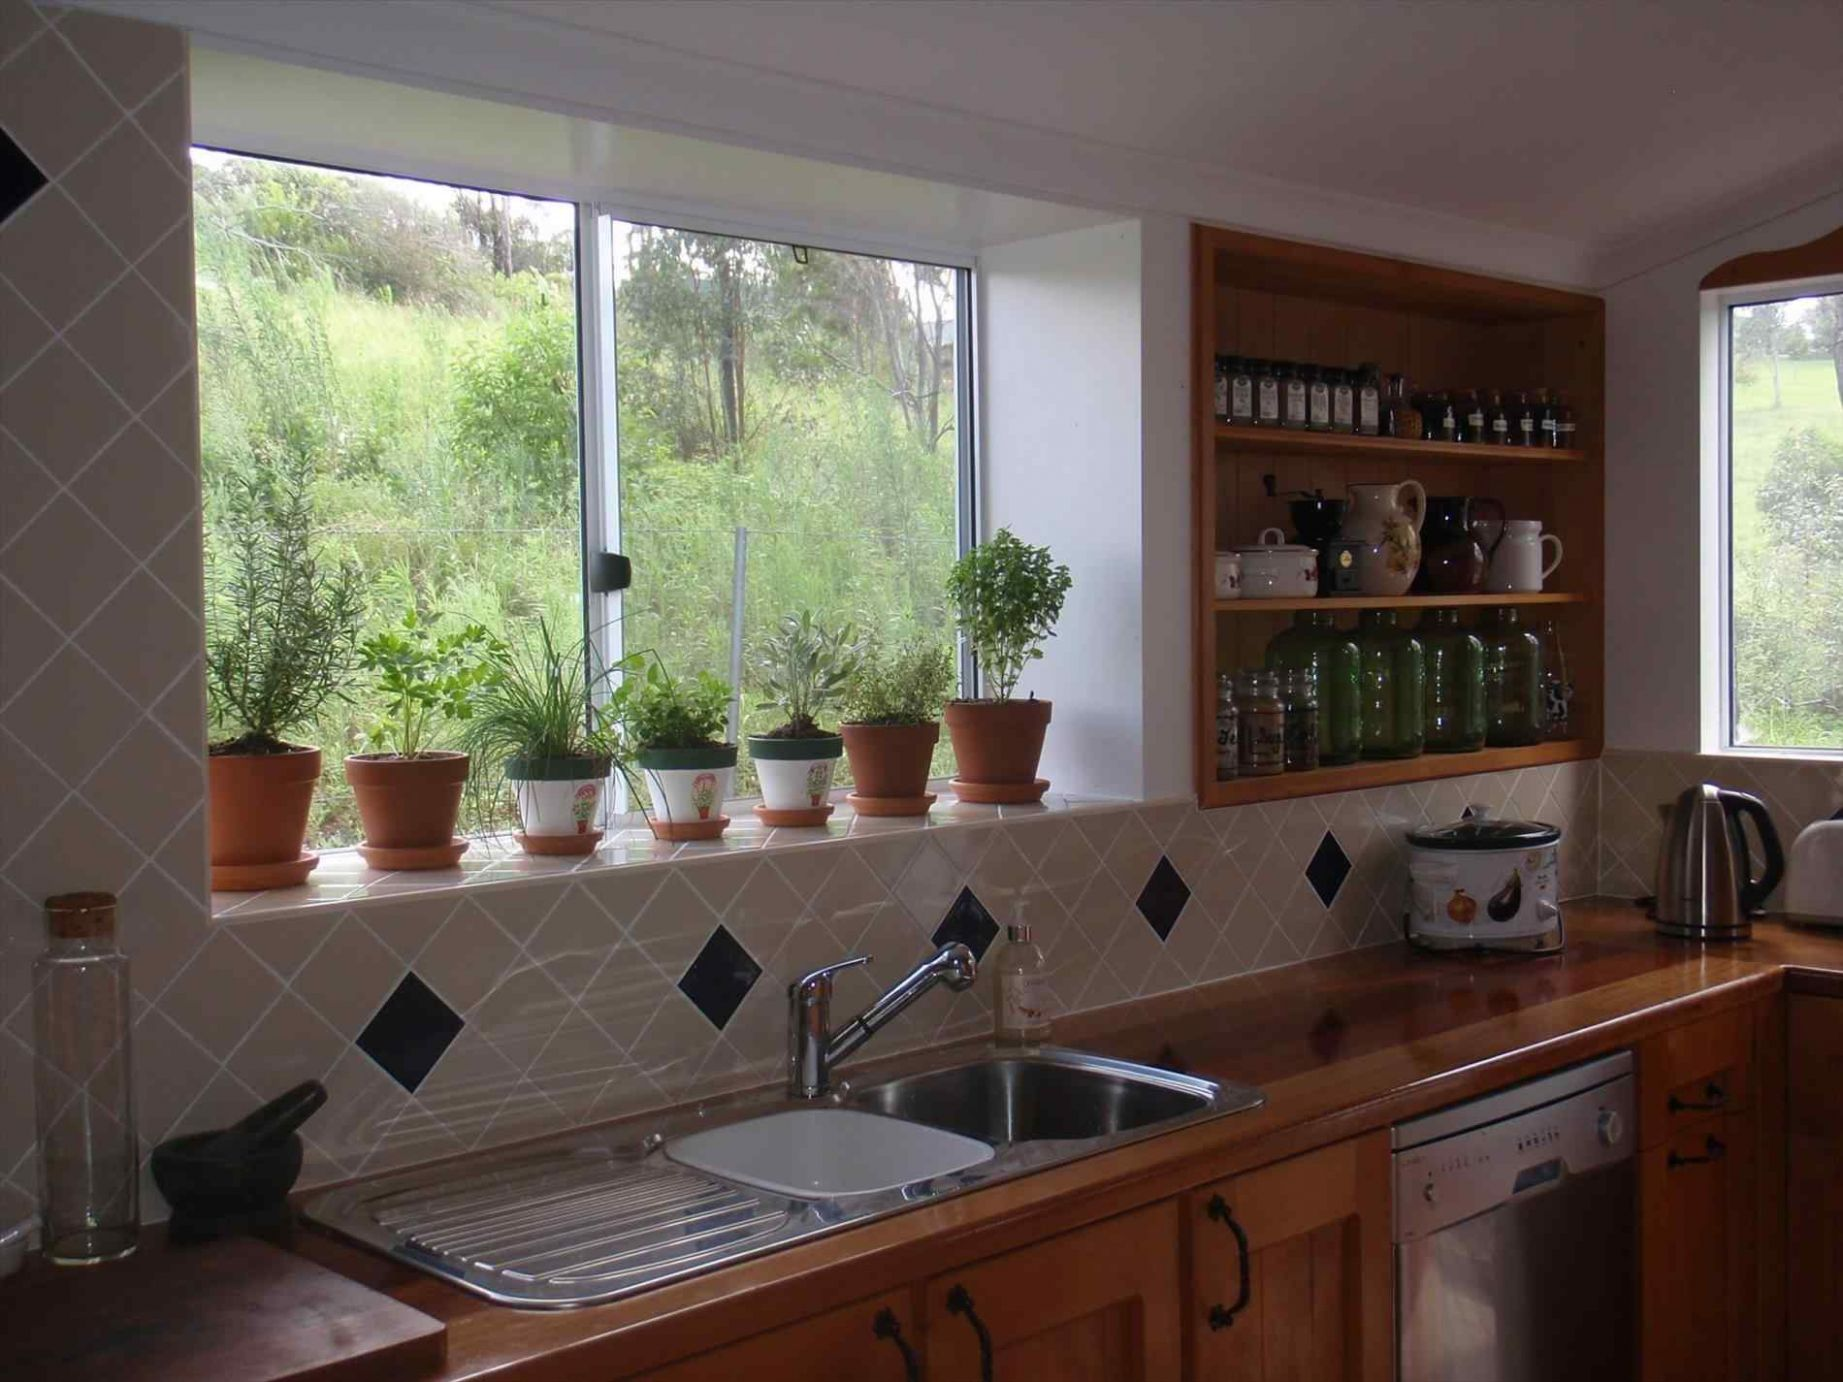 Style up the Window Ledge Space with These Stunning Ideas - window sill ideas kitchen